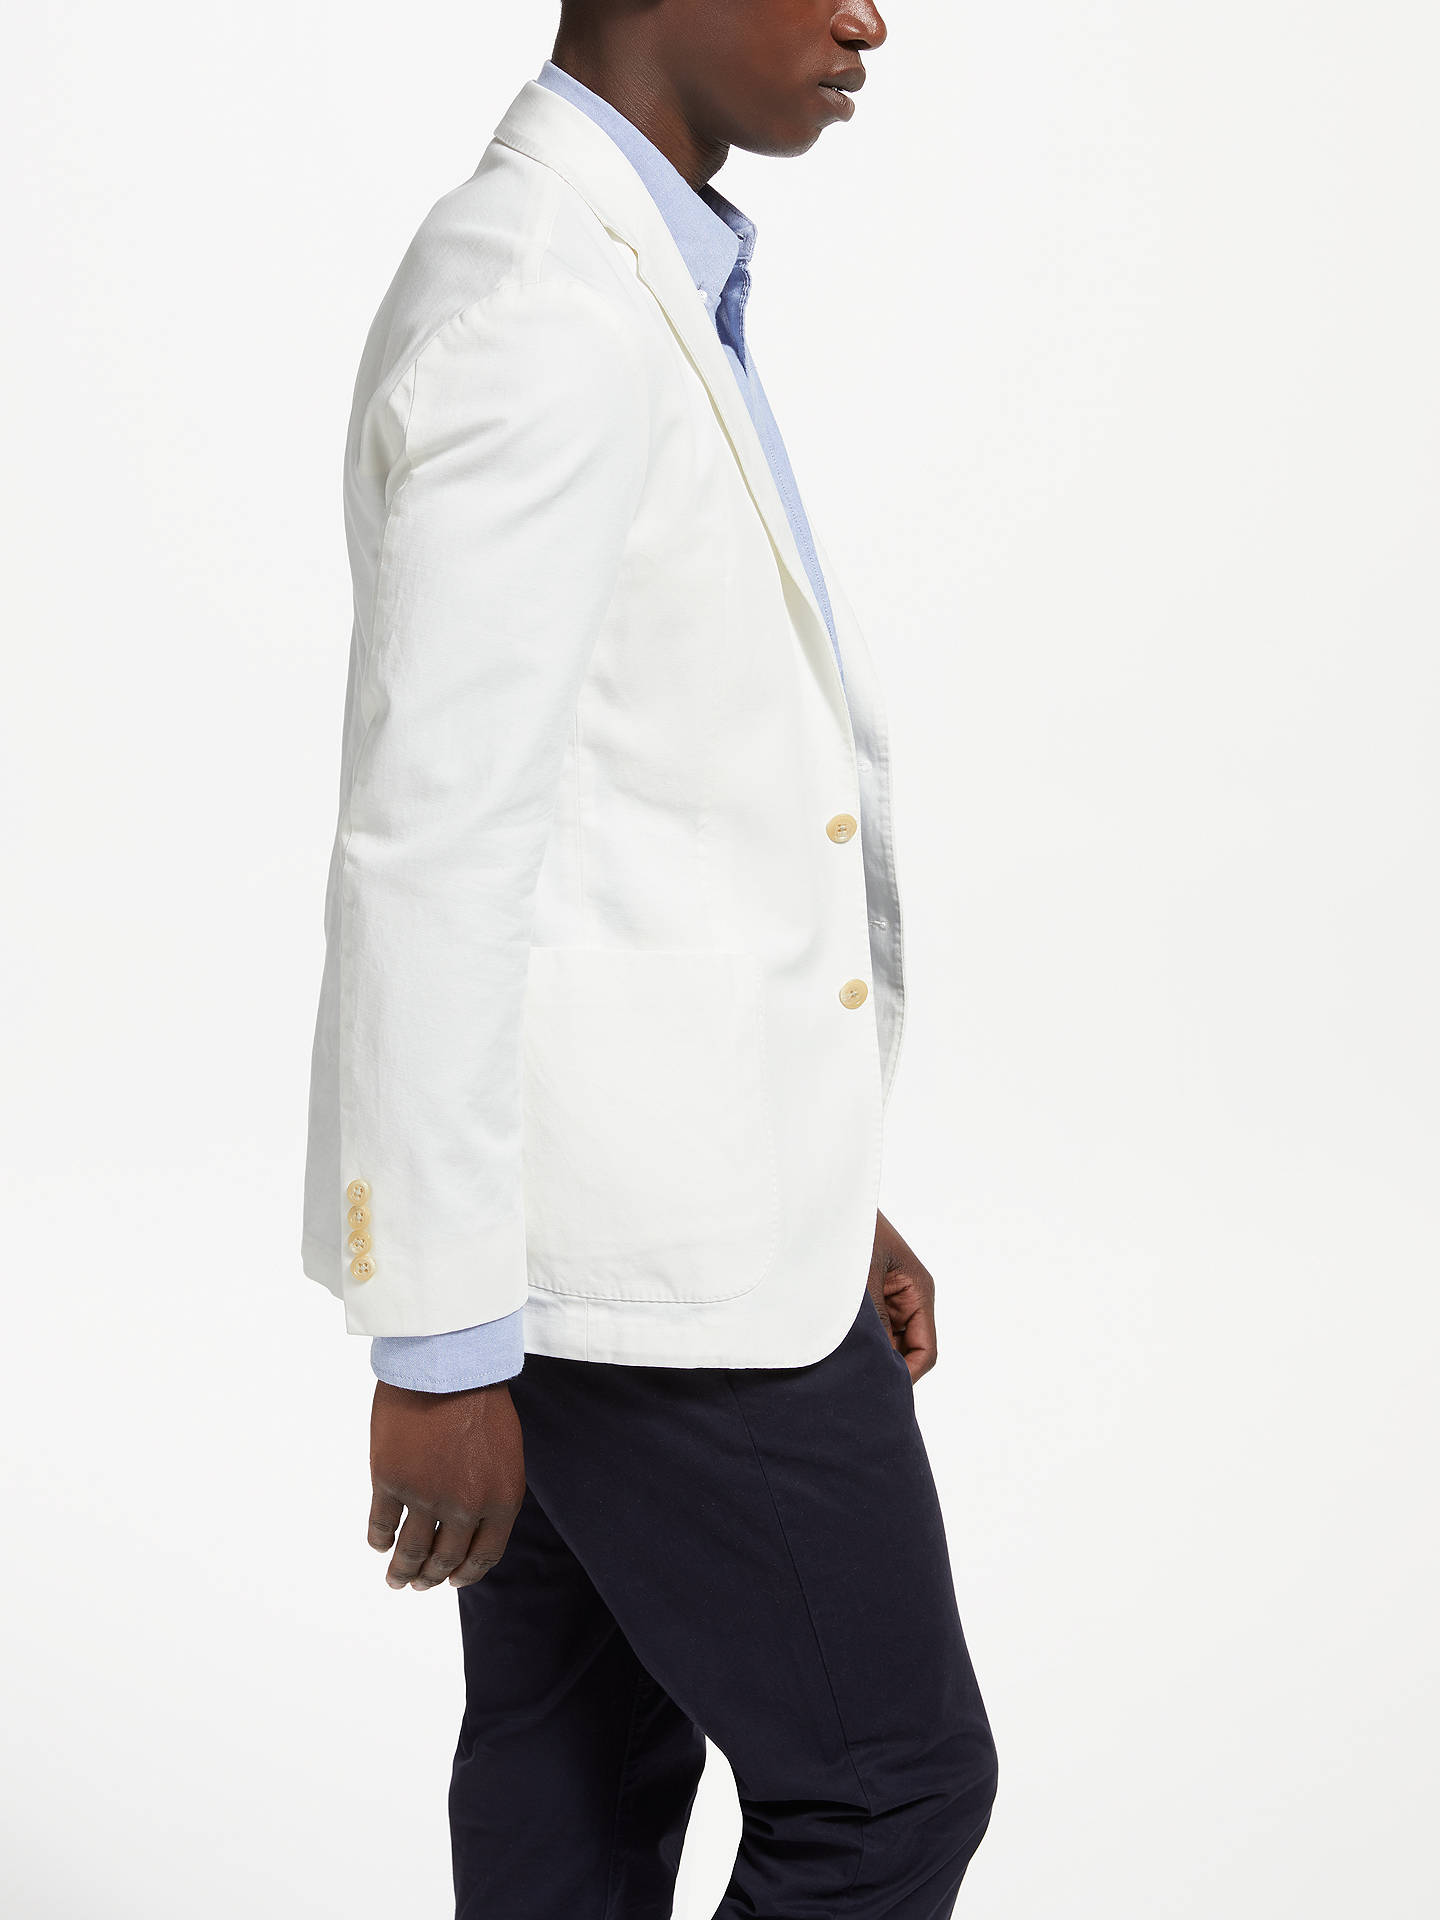 BuyPolo Ralph Lauren Sports Coat, Off White, 38R Online at johnlewis.com